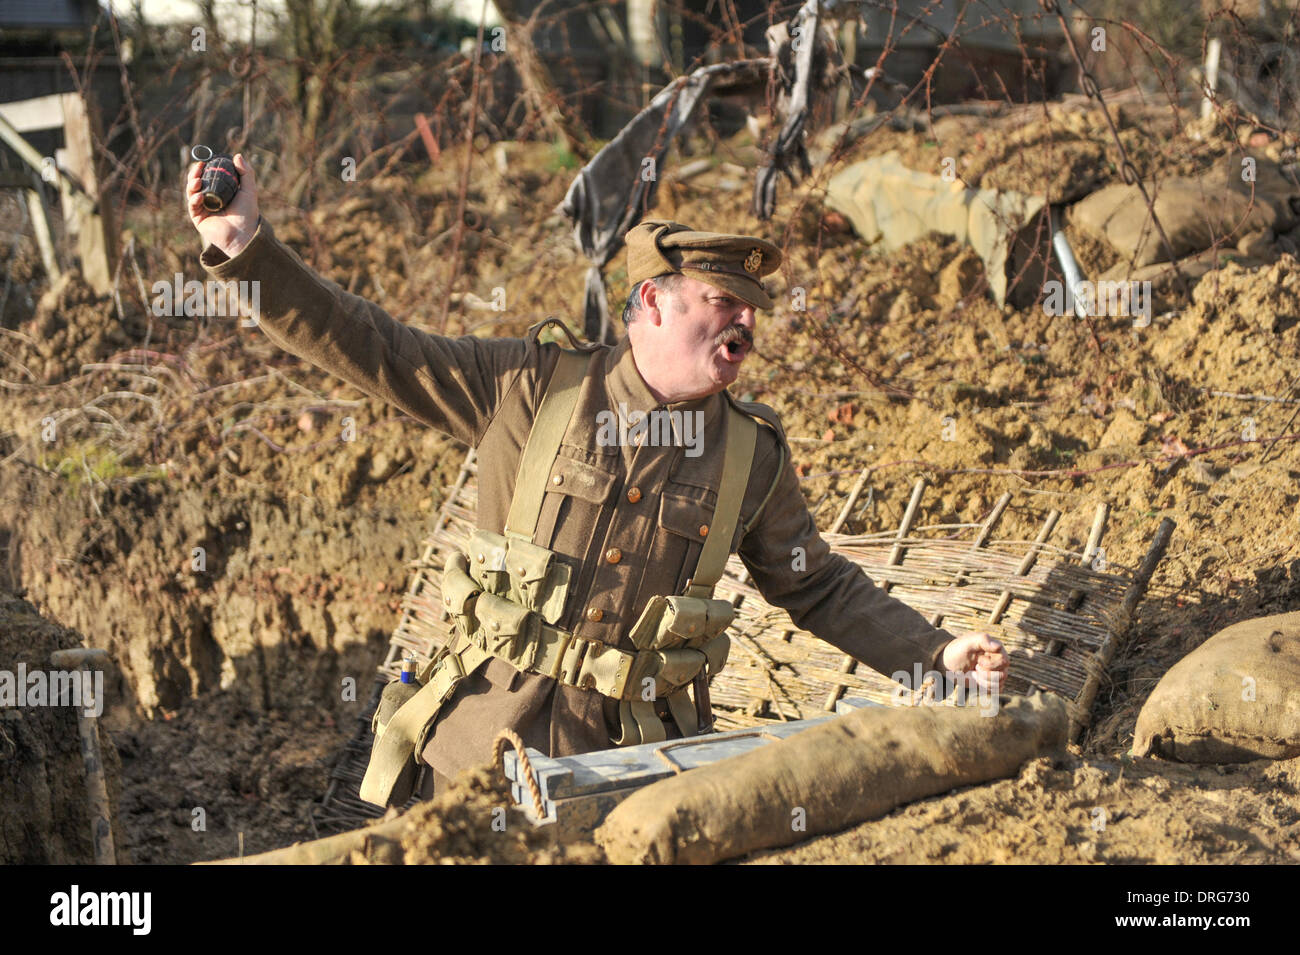 Charlwood, Surrey, UK. 25th January 2014. Throwing a Mills Hand Grenade at the Trench. Credit:  Matthew Chattle/Alamy Live News - Stock Image